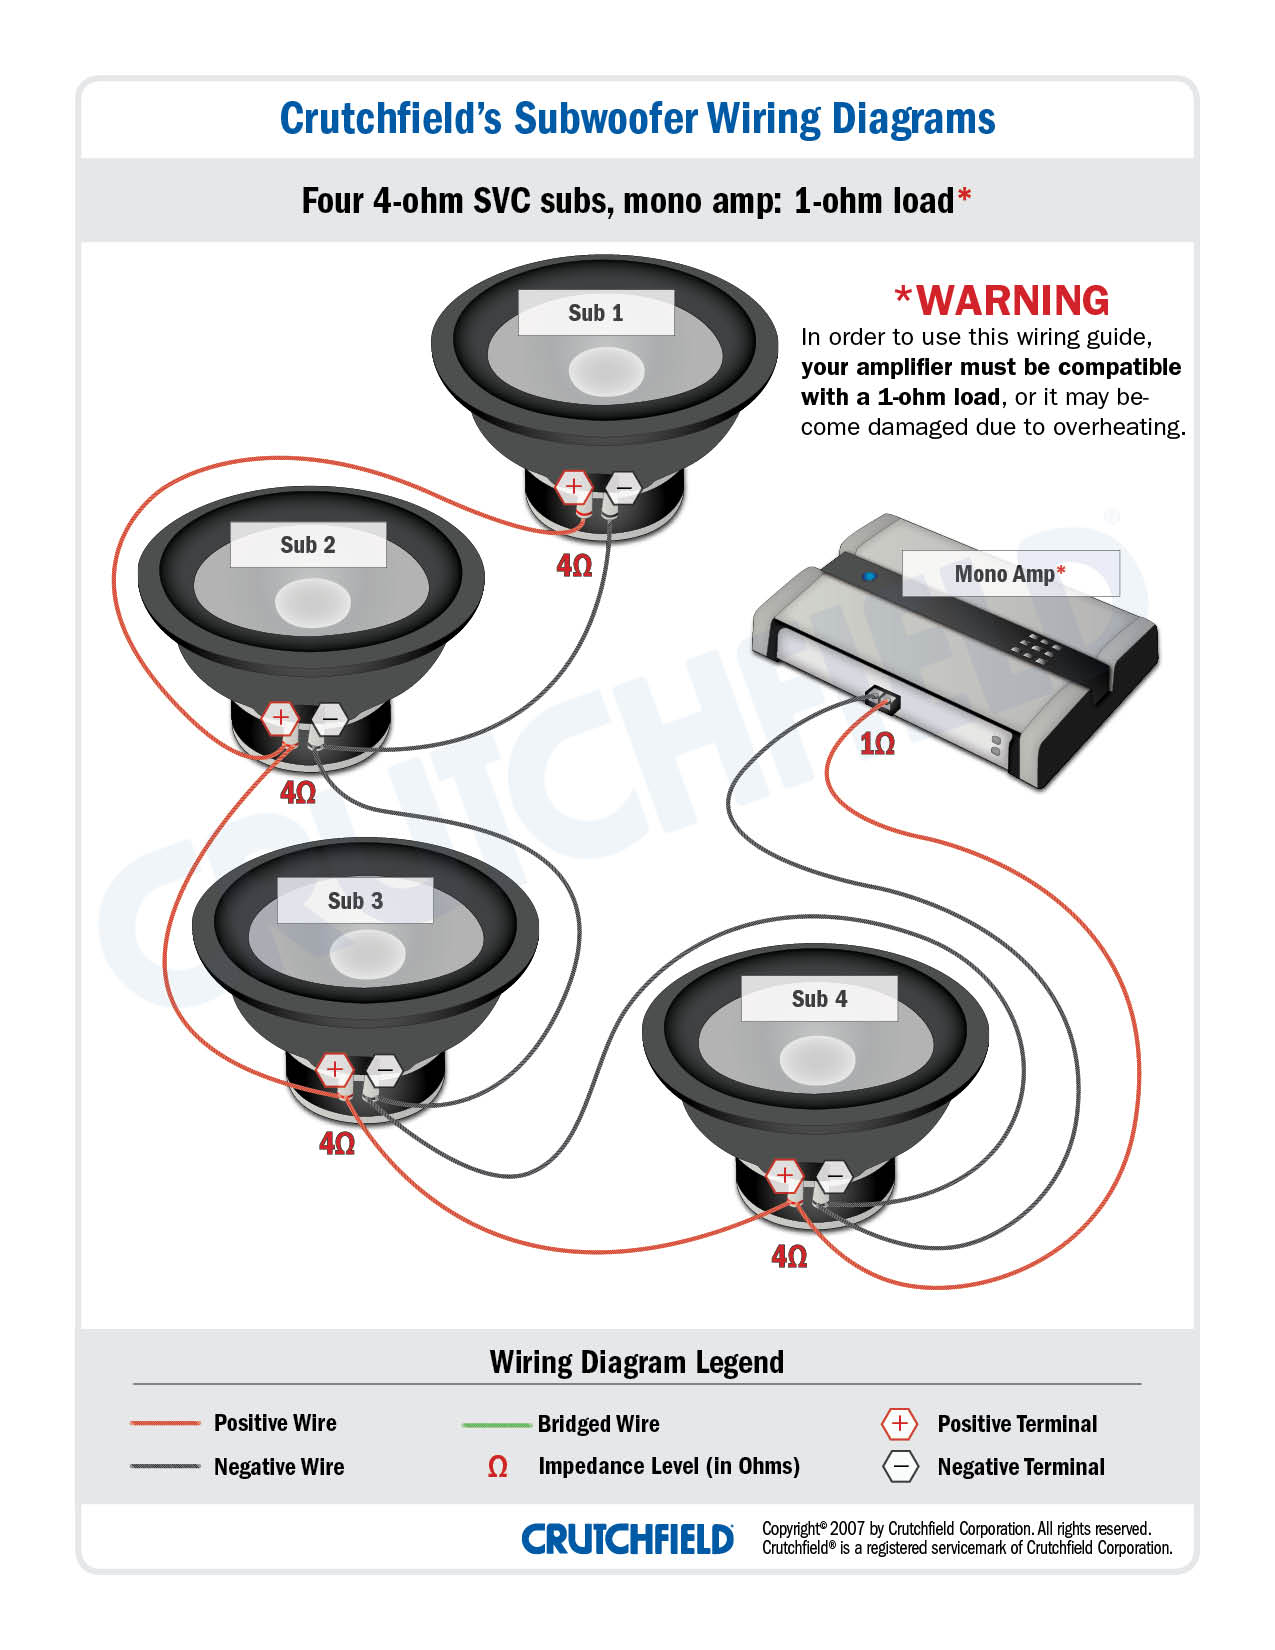 4 SVC 4 ohm mono low imp wiring subwoofers what's all this about ohms? amp to sub wiring diagram at panicattacktreatment.co